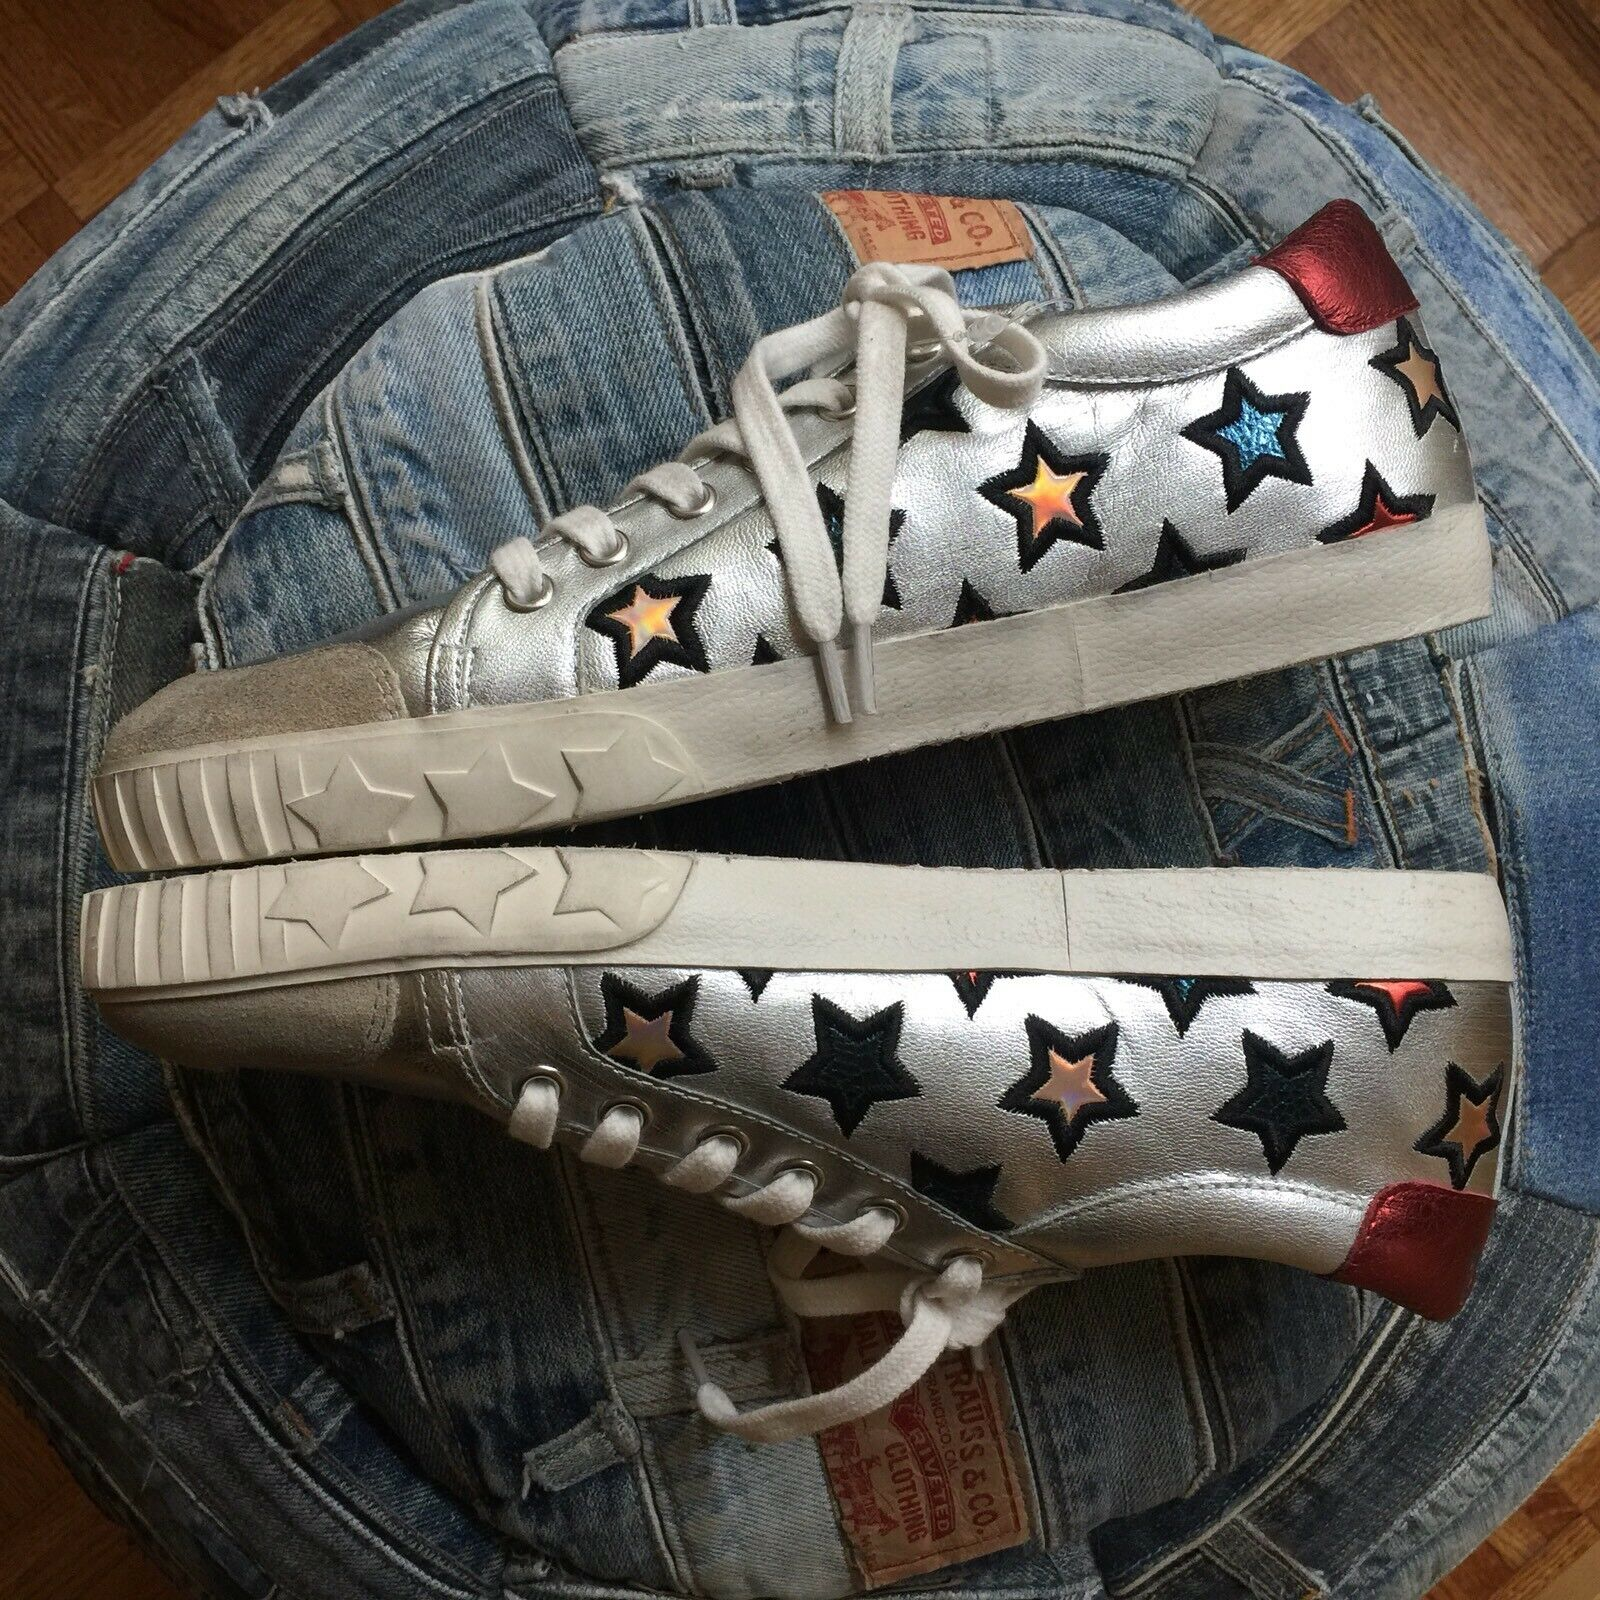 NEW    ASH Majestic Star Star Star Motif Womens Sneakers Trainers sz 40 175816